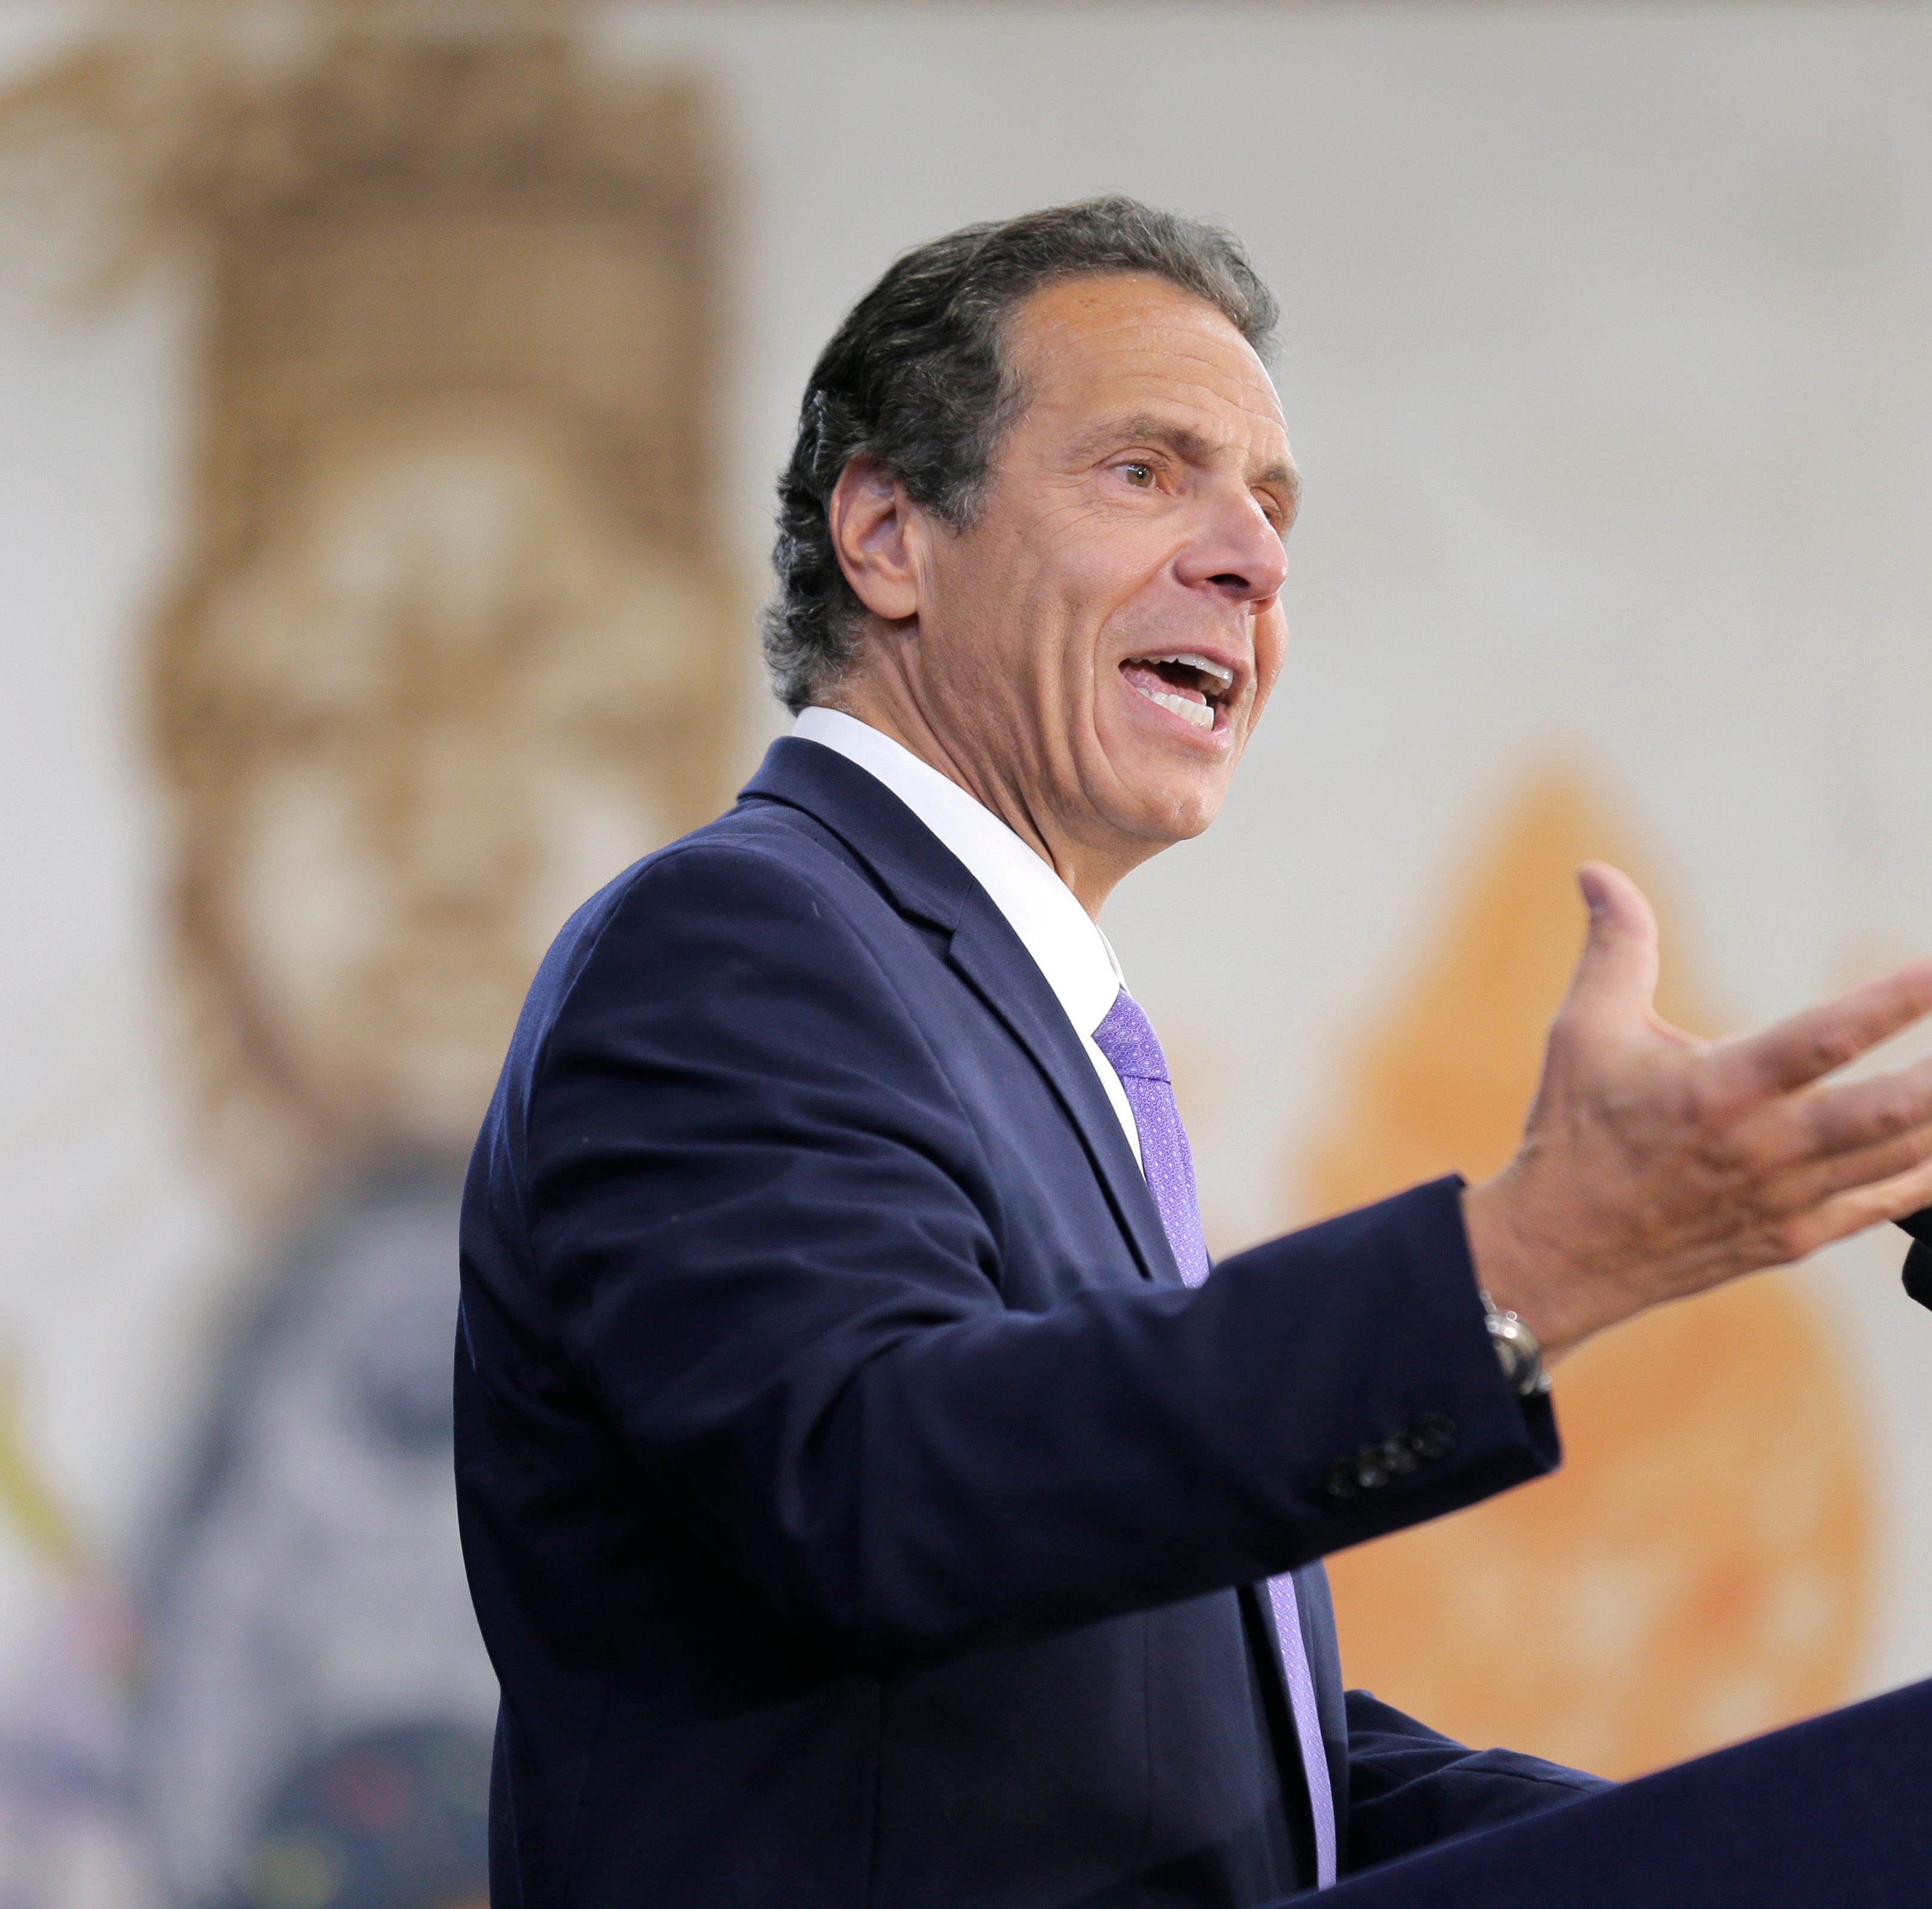 Andrew Cuomo has yet to agree to debates as Election Day nears